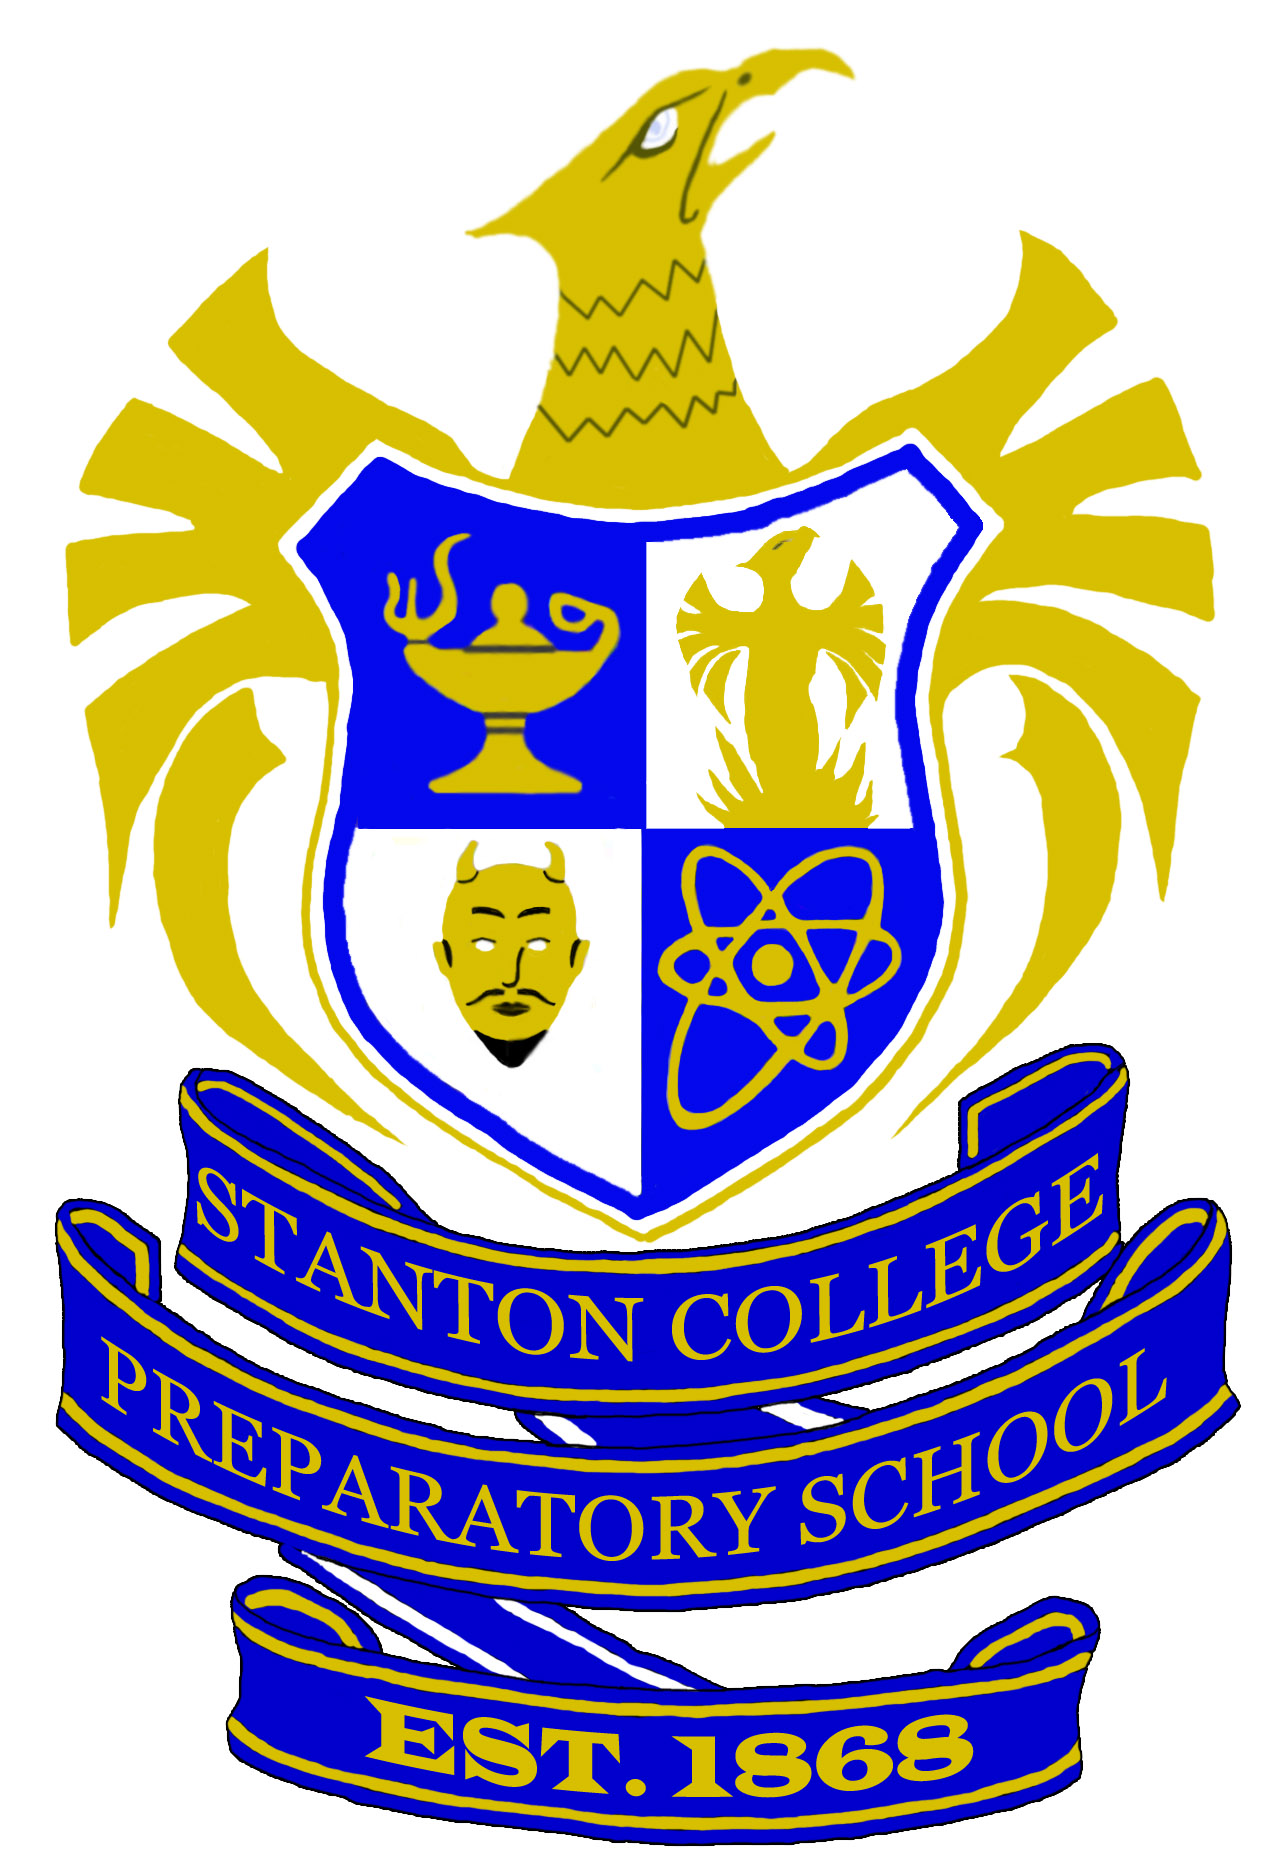 stanton college preparatory school    homepage